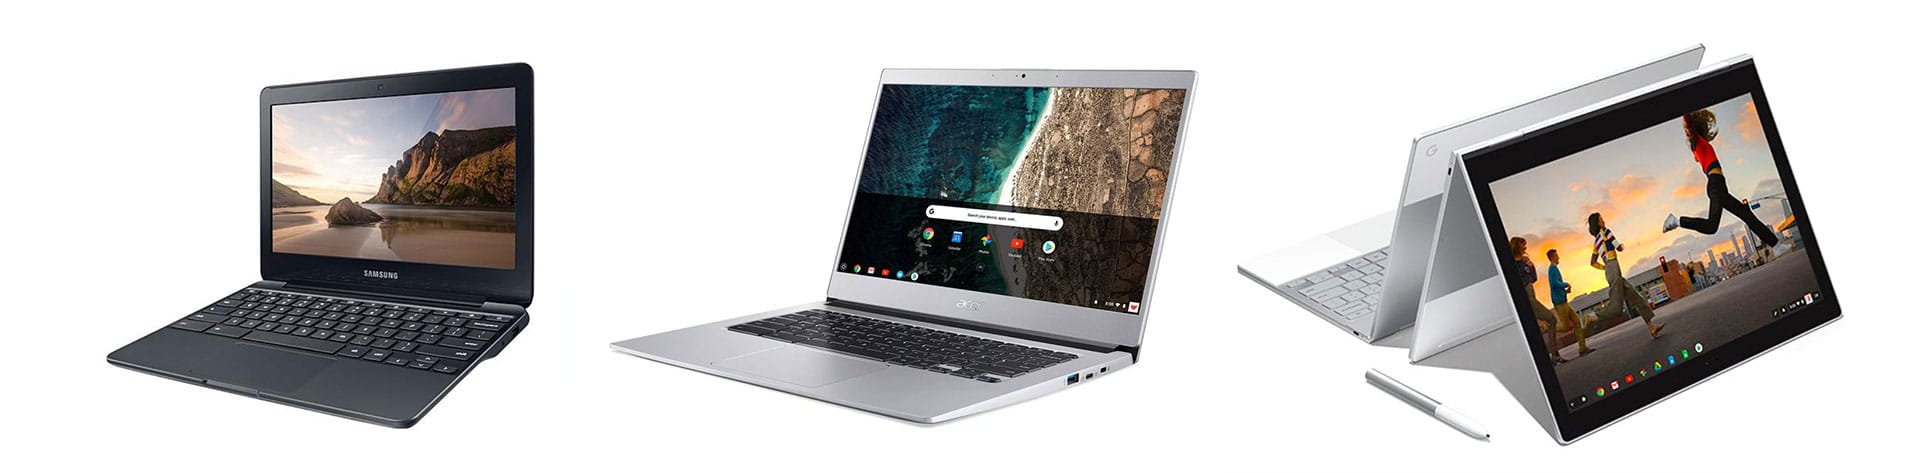 Just some of the available Chromebooks